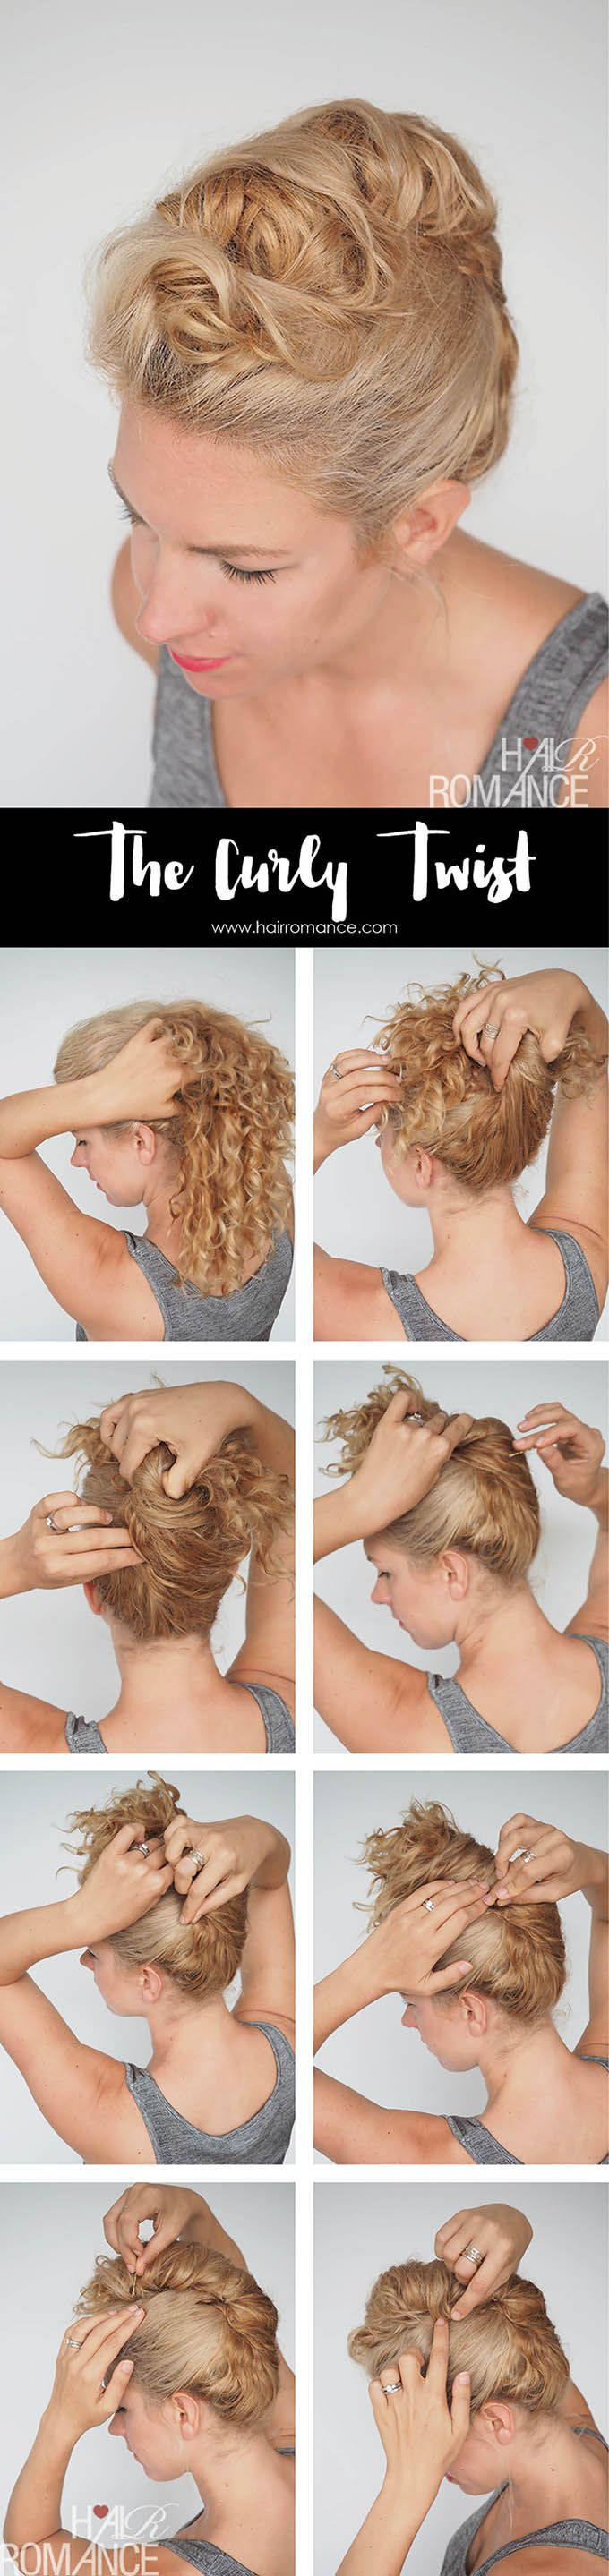 Curly hair tutorial easy curly twist updo hair pinterest